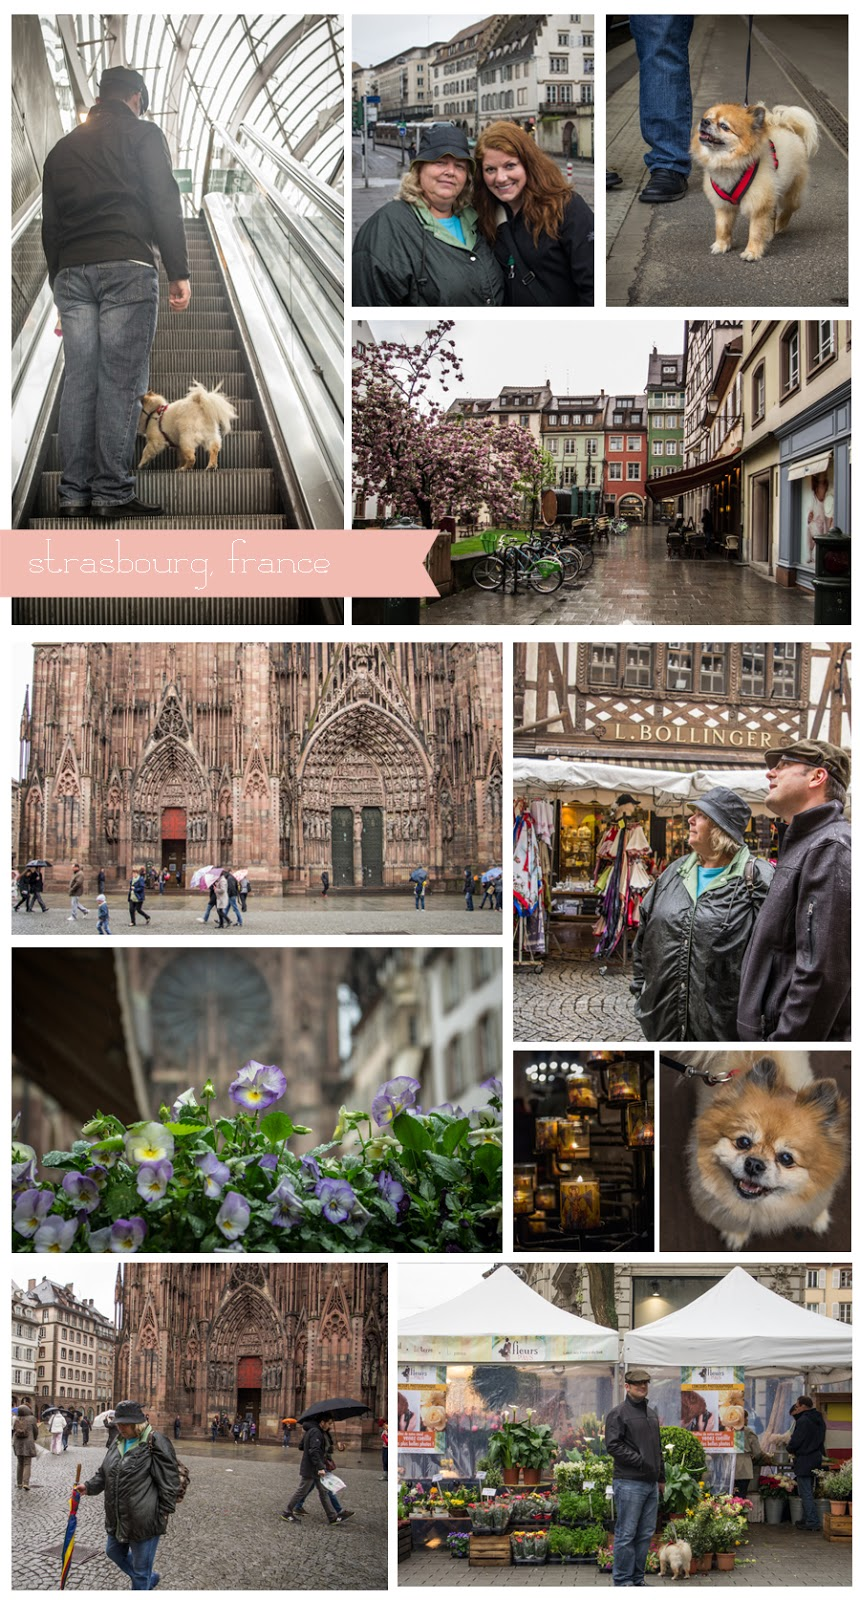 Day trips from Rheinland Pfalz: Strasbourg, France